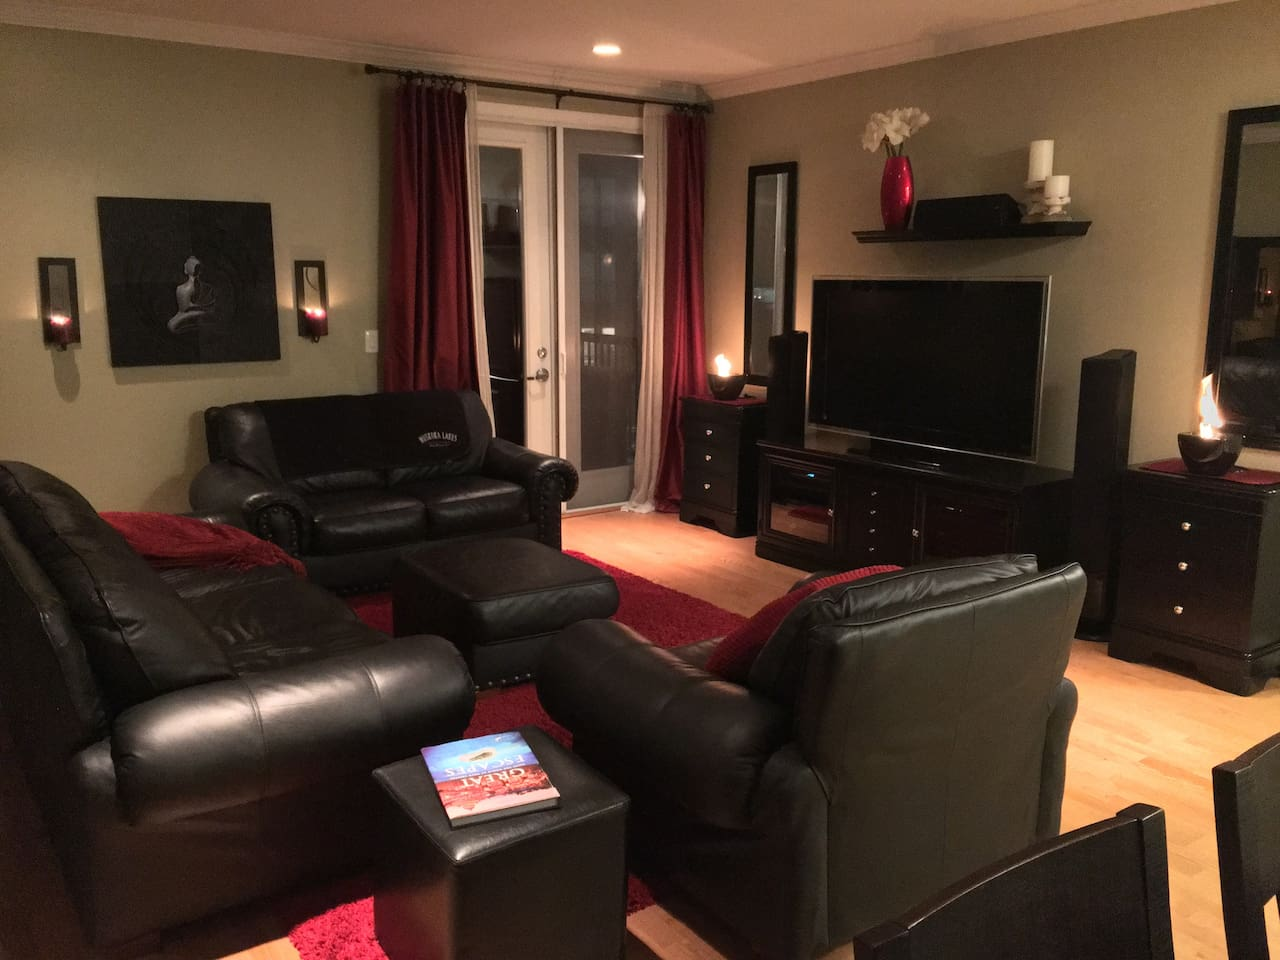 Spacious cozy living room to stretch out and spend an afternoon, or evening by candle light.